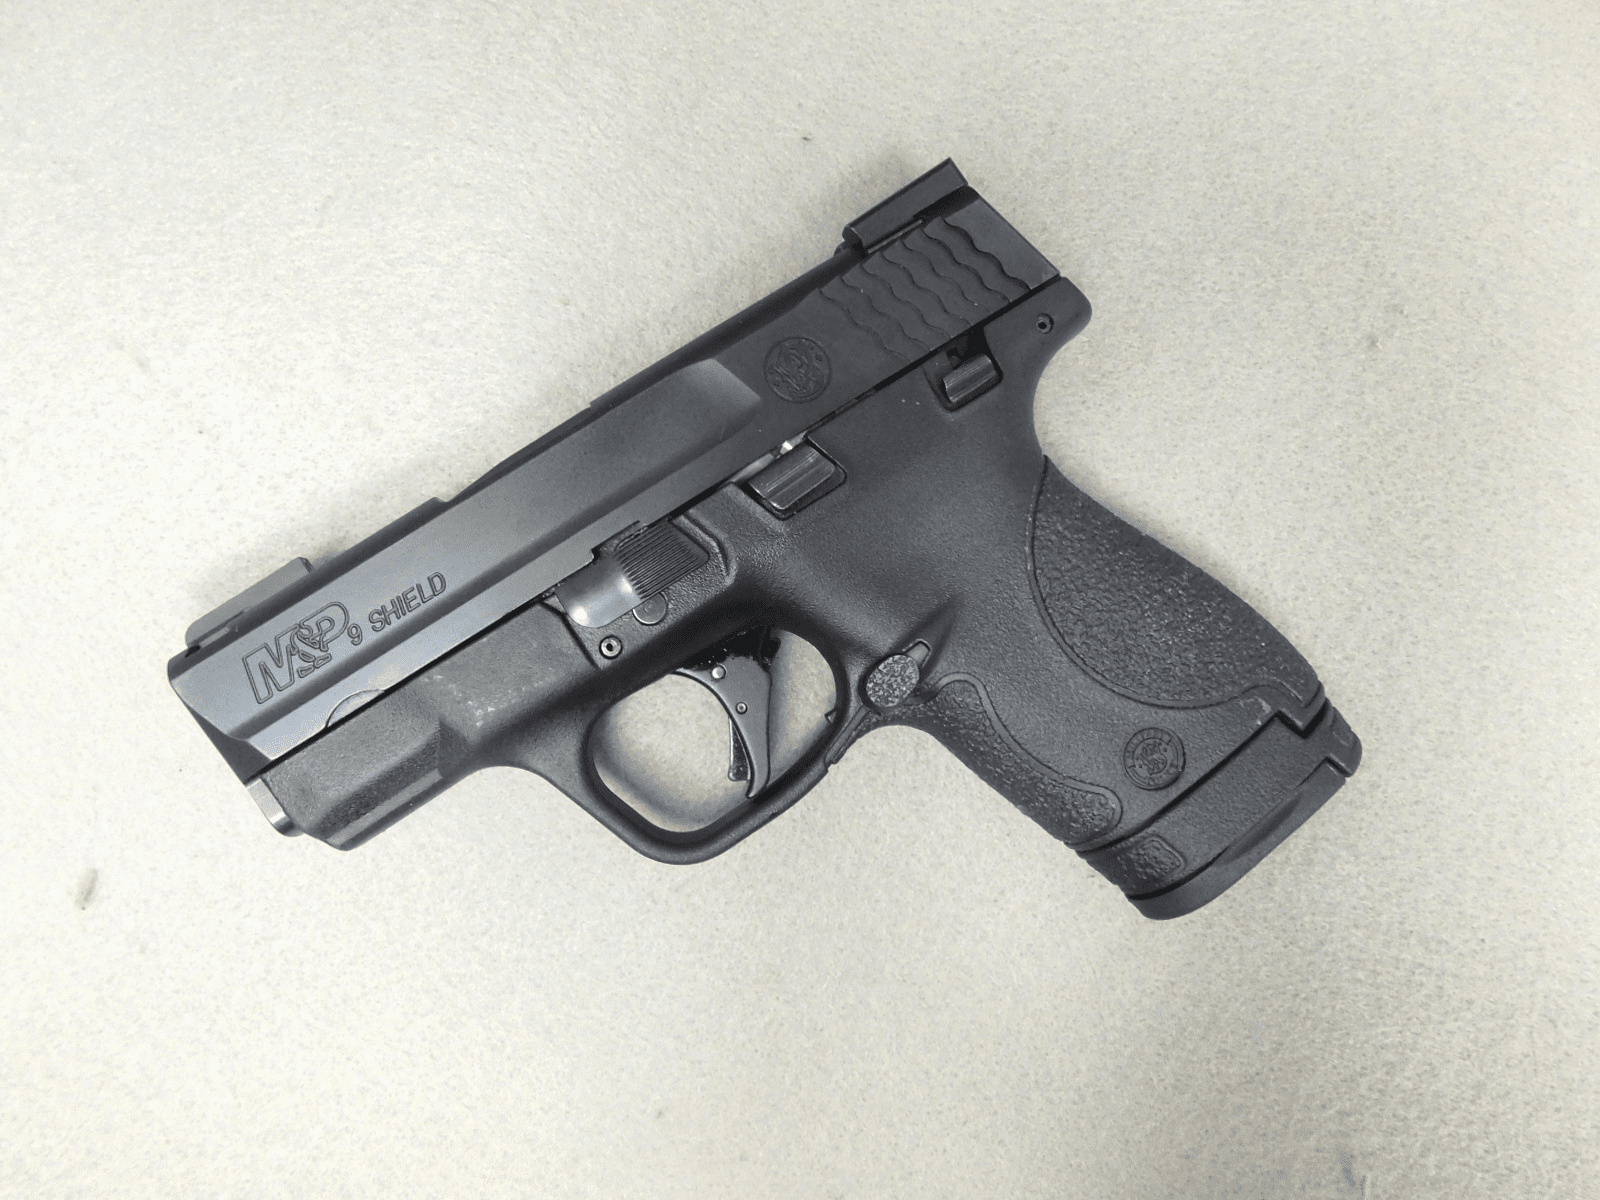 Smith & Wesson M&P 9 Shield with Apex Trigger & Truglo Sights (9mm)